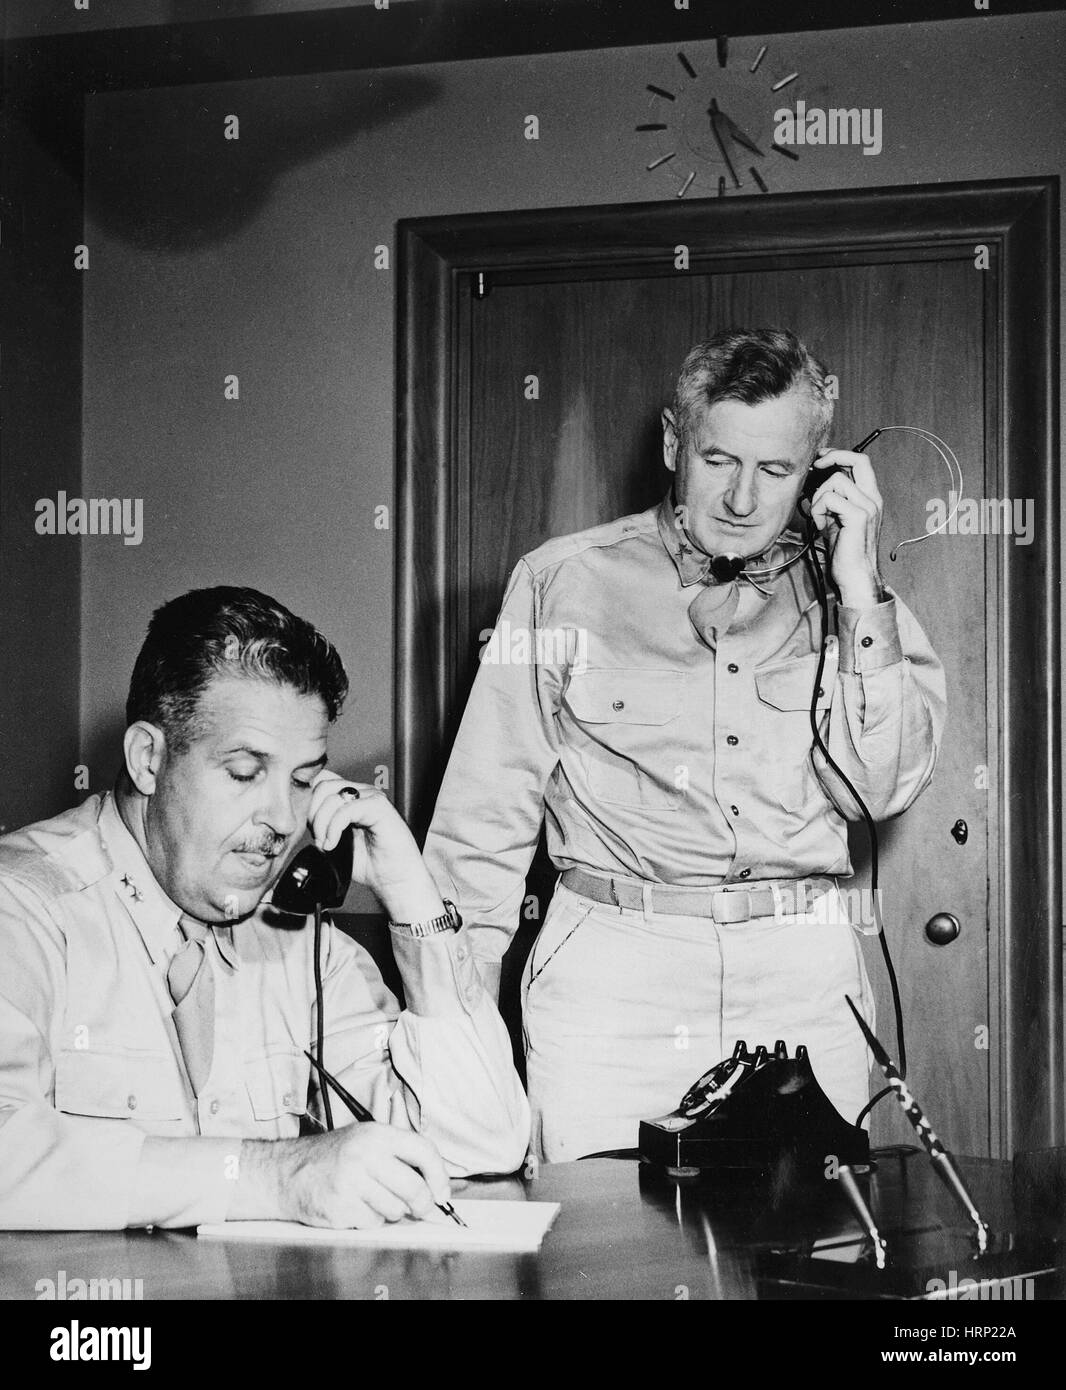 Generals Groves and Farrell, 1945 - Stock Image